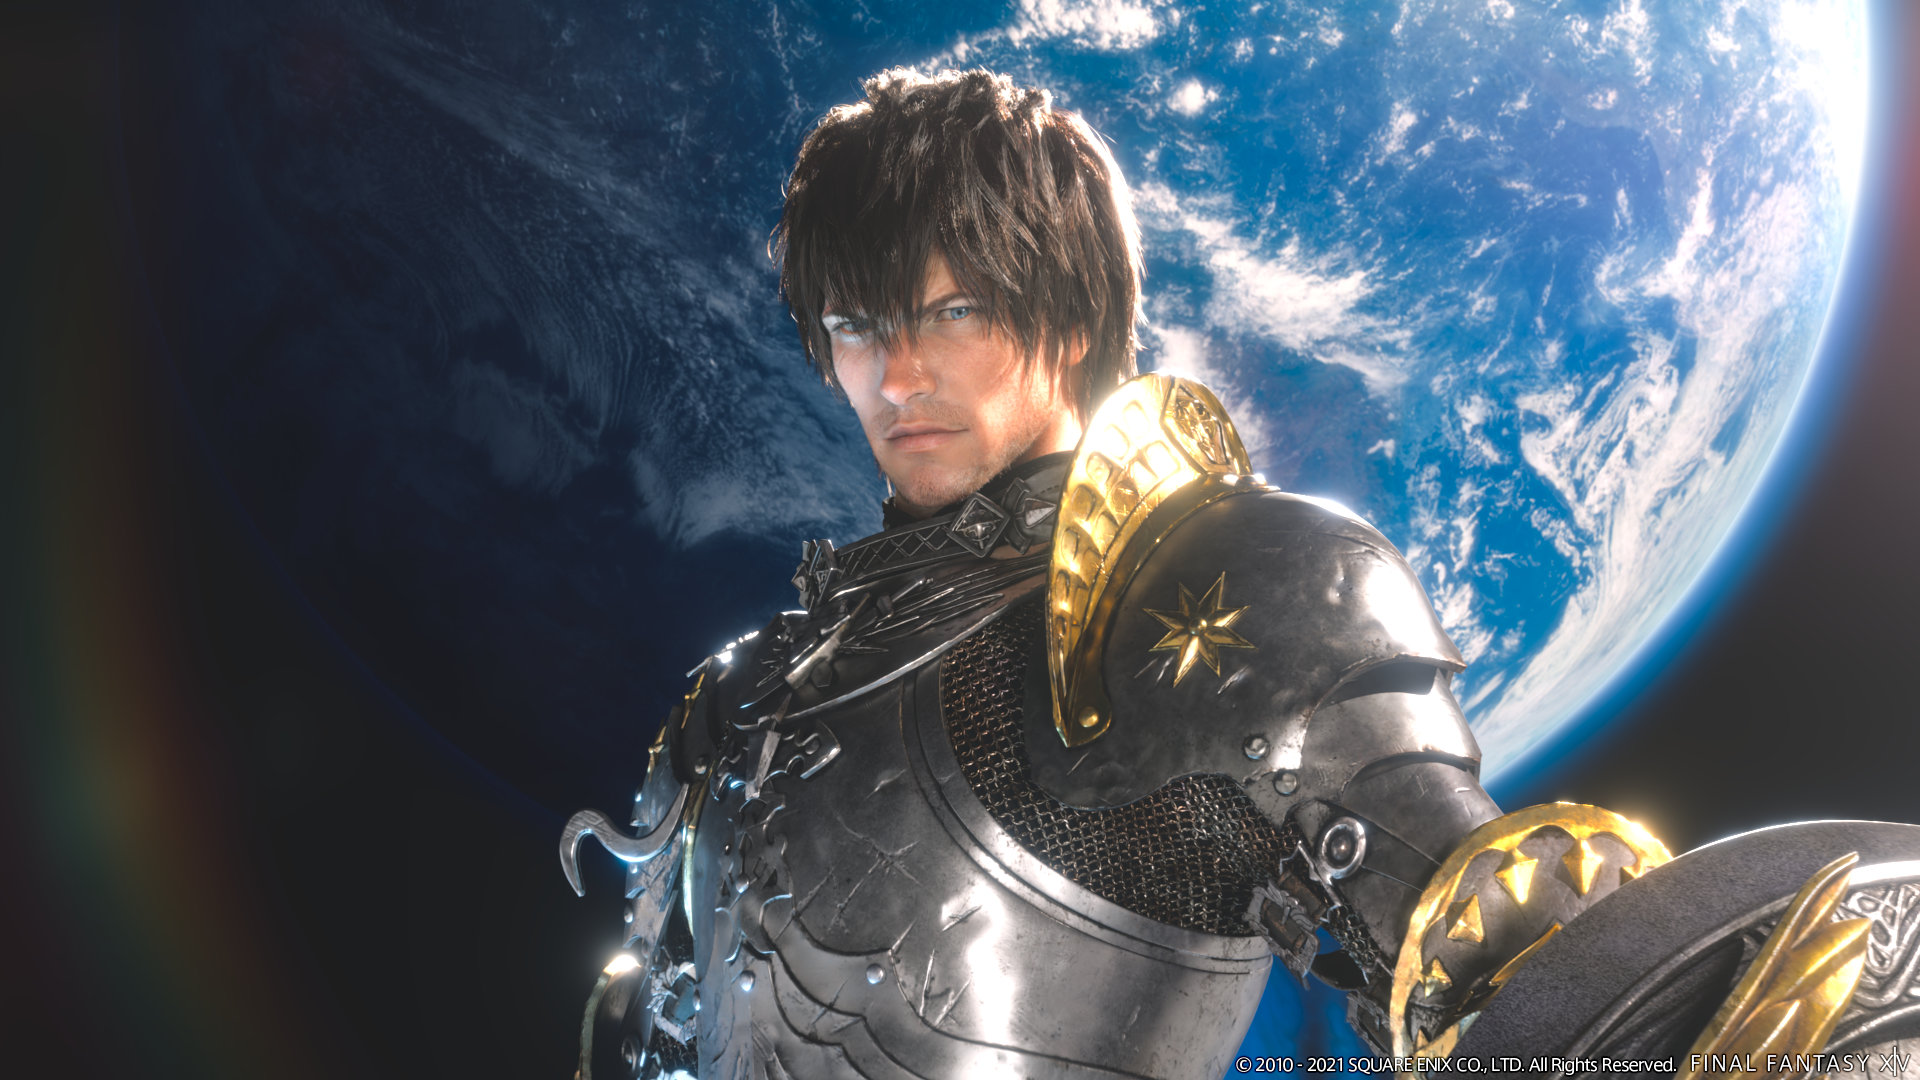 Final Fantasy XIV: Endwalker artwork of a male paladin in gleaming silver and gold armor, face set in determination, with a blue planet behind him.